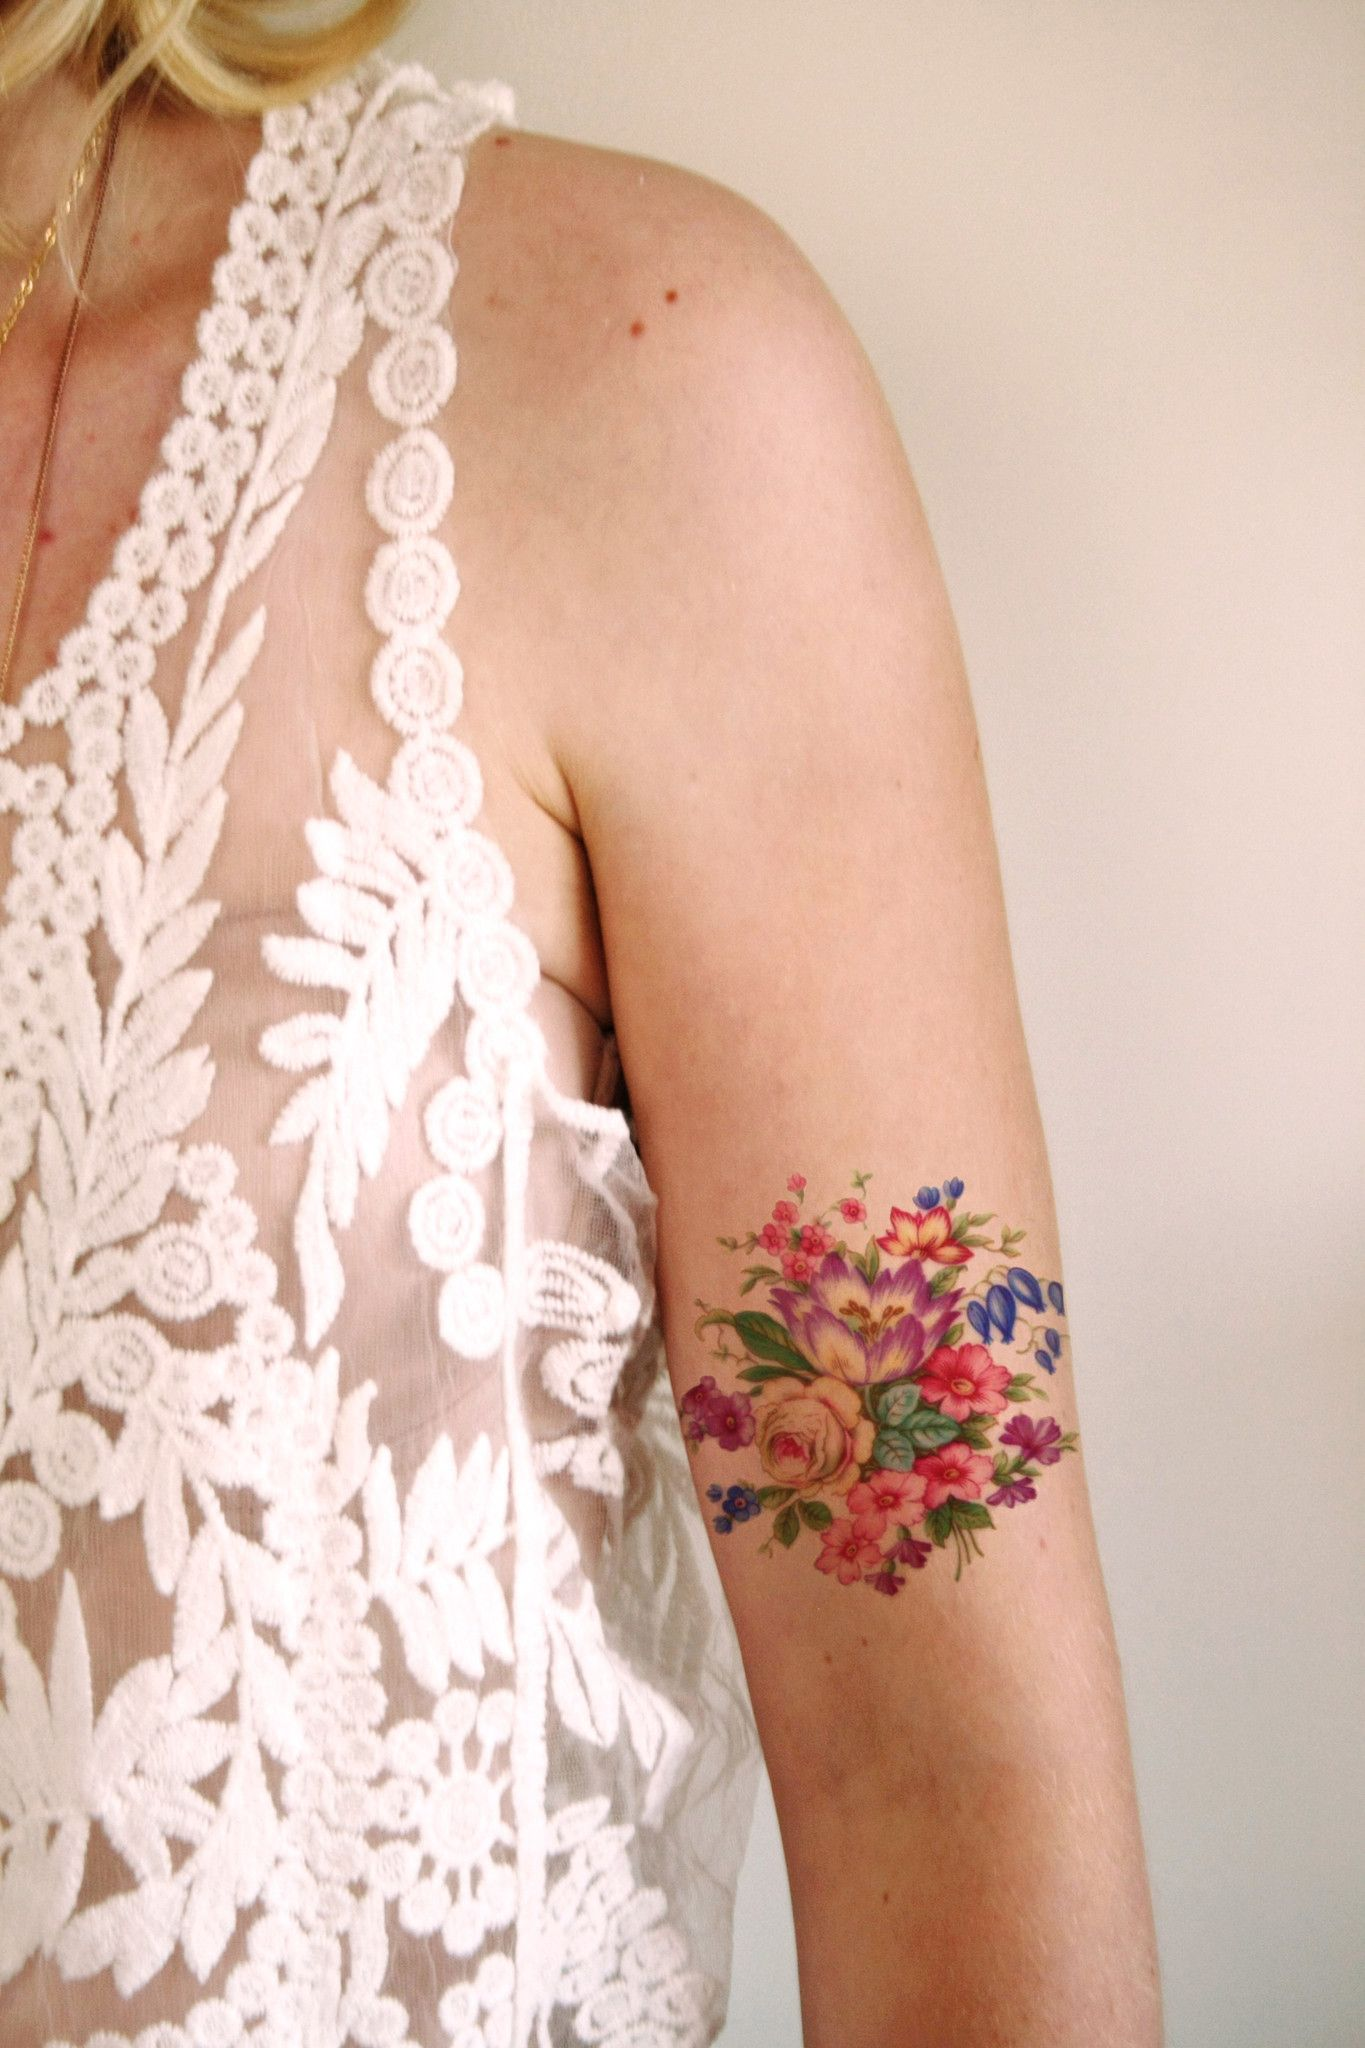 Pretty Colorful Vintage Floral Temporary Tattoo Tatts Pinterest